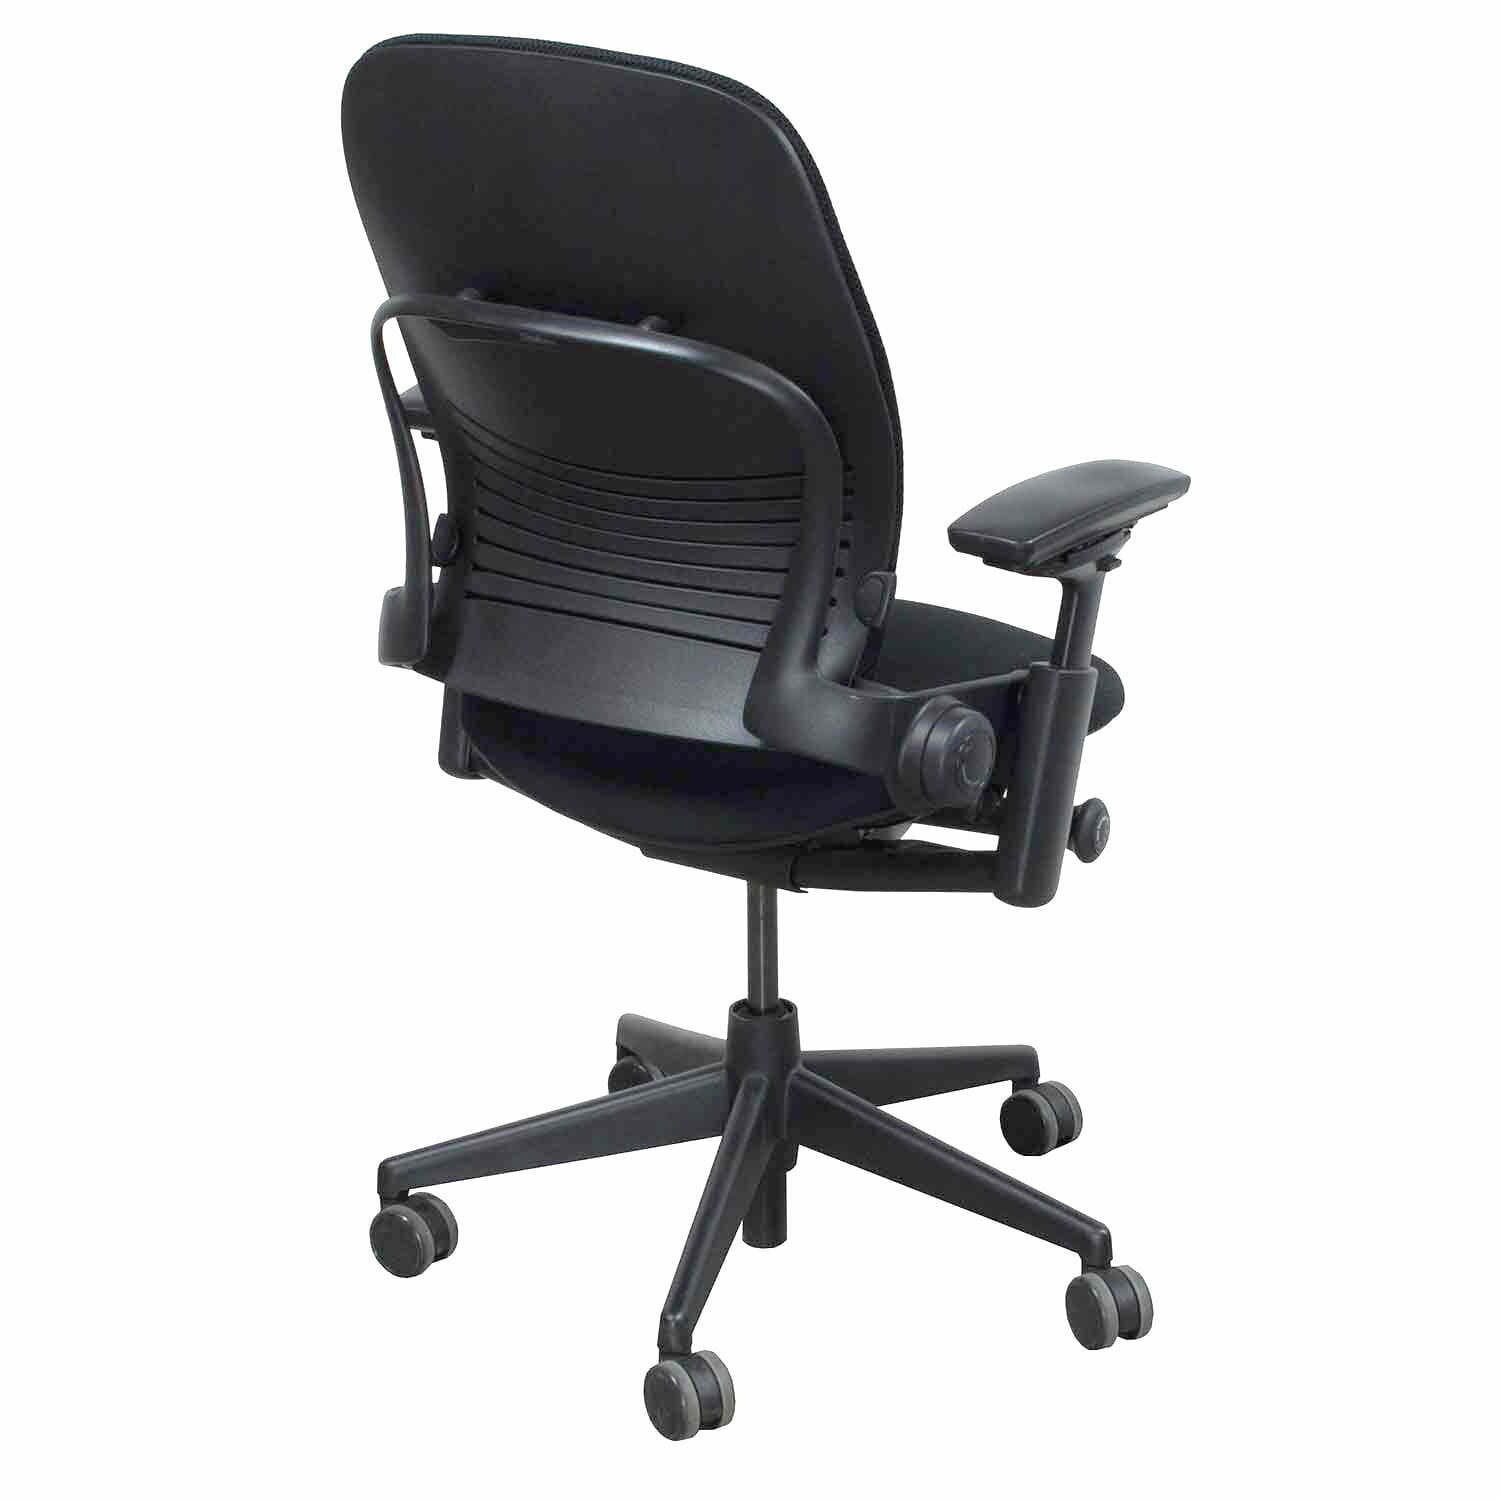 office chair leans forward white lawn chairs steelcase leap 2  unisource furniture